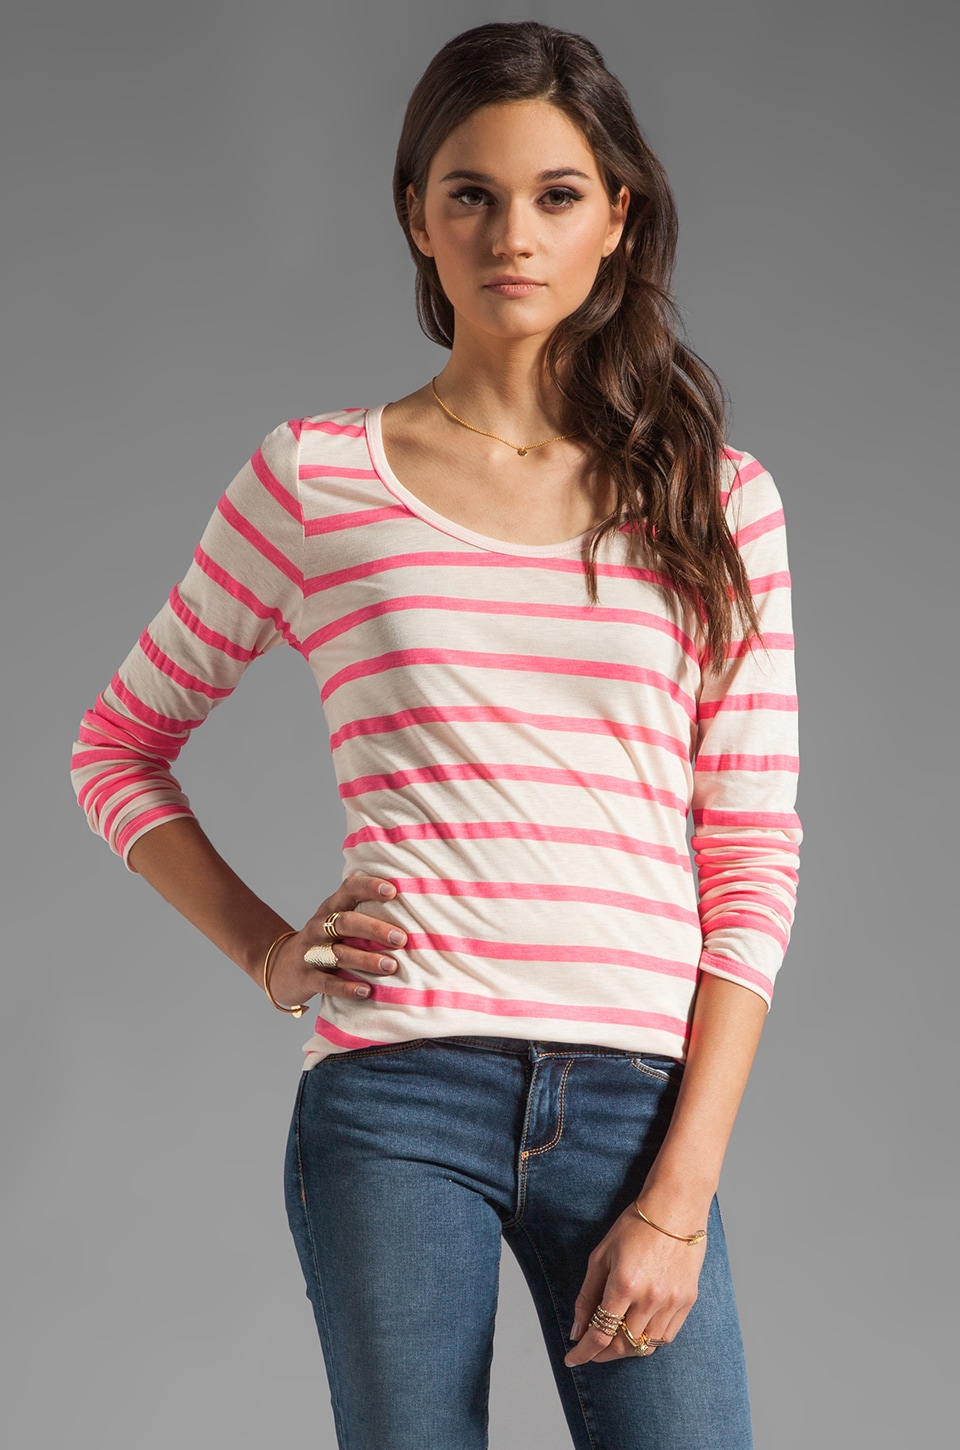 Velvet by Graham & Spencer Resort Stripe Minerva Long Sleeve Top in Neon Pink